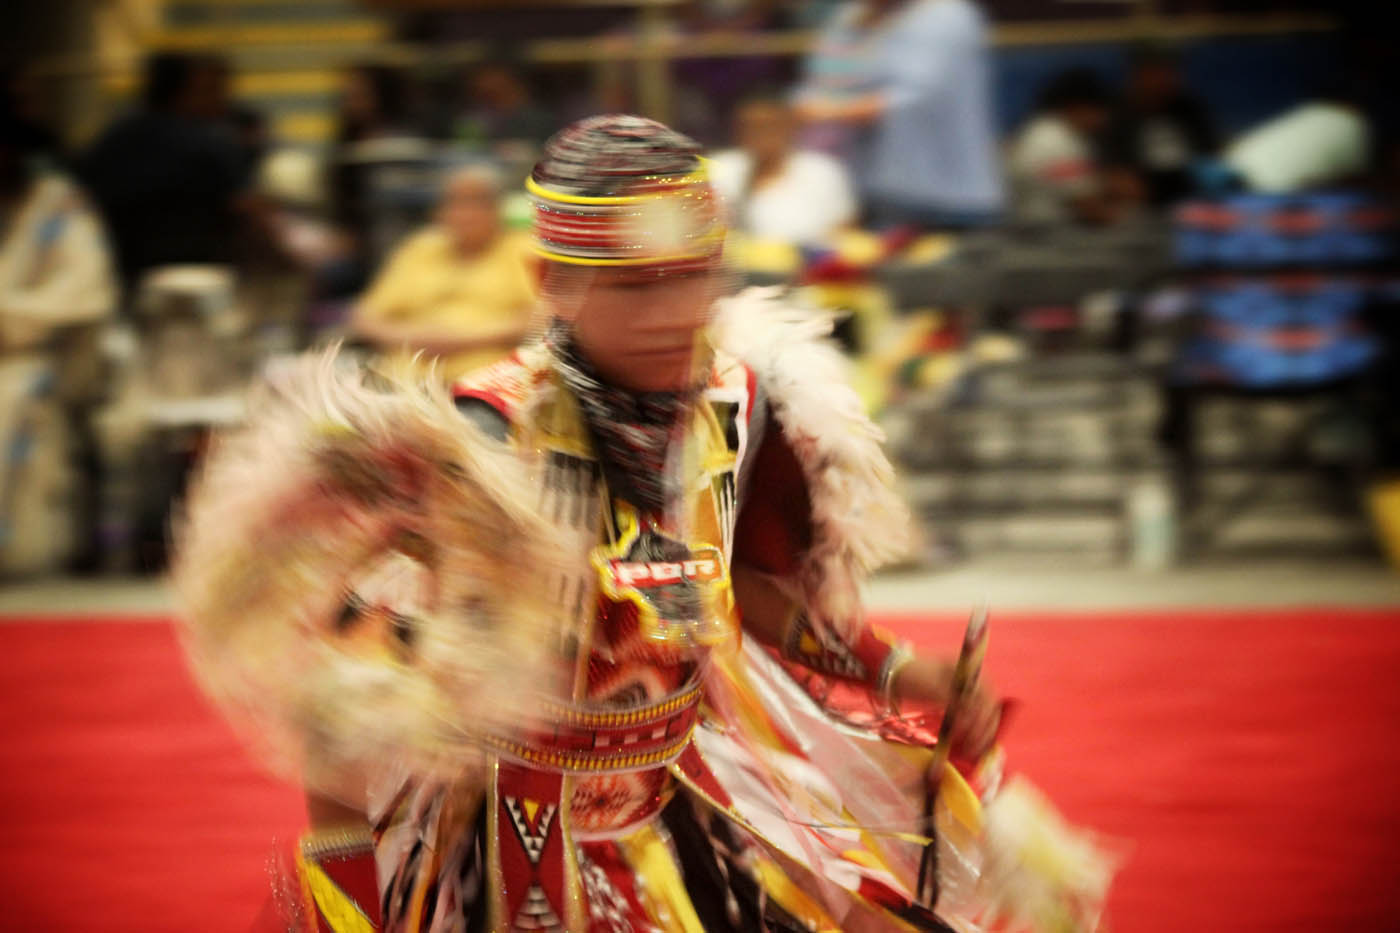 Part II: The Vibrancy of Indigenous Spirit – #ExploreLethbridge